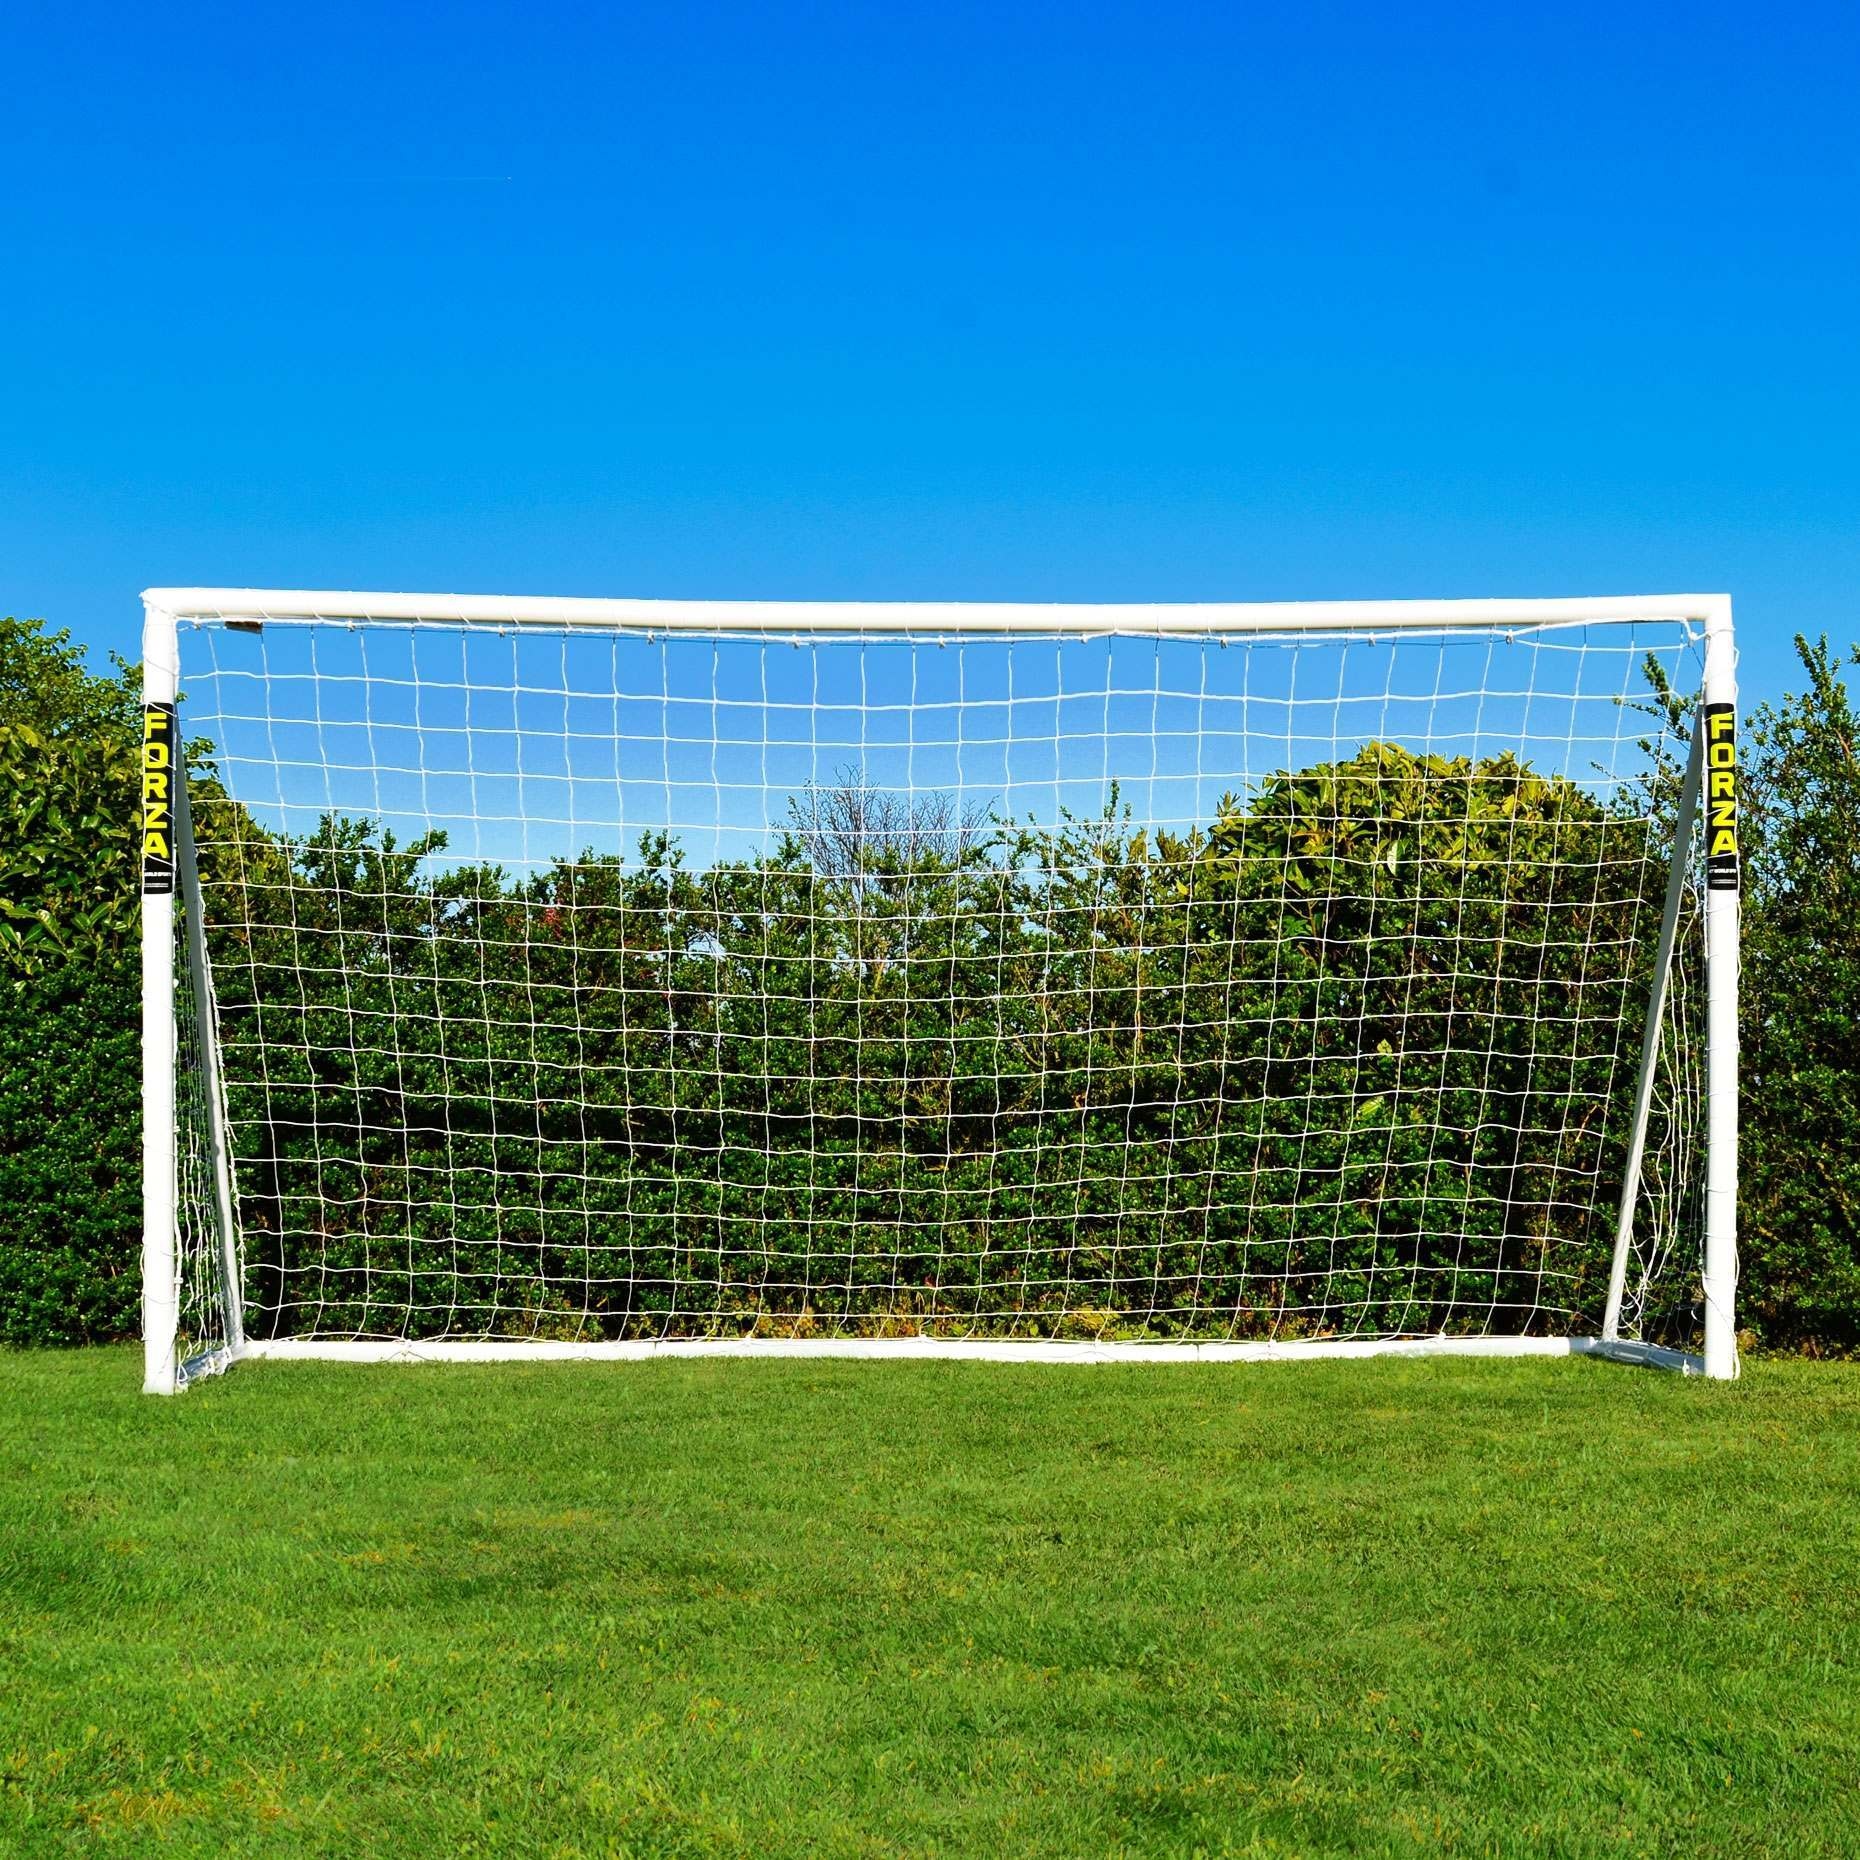 3.7m x 1.8m FORZA Soccer Goal Post | Net World Sports